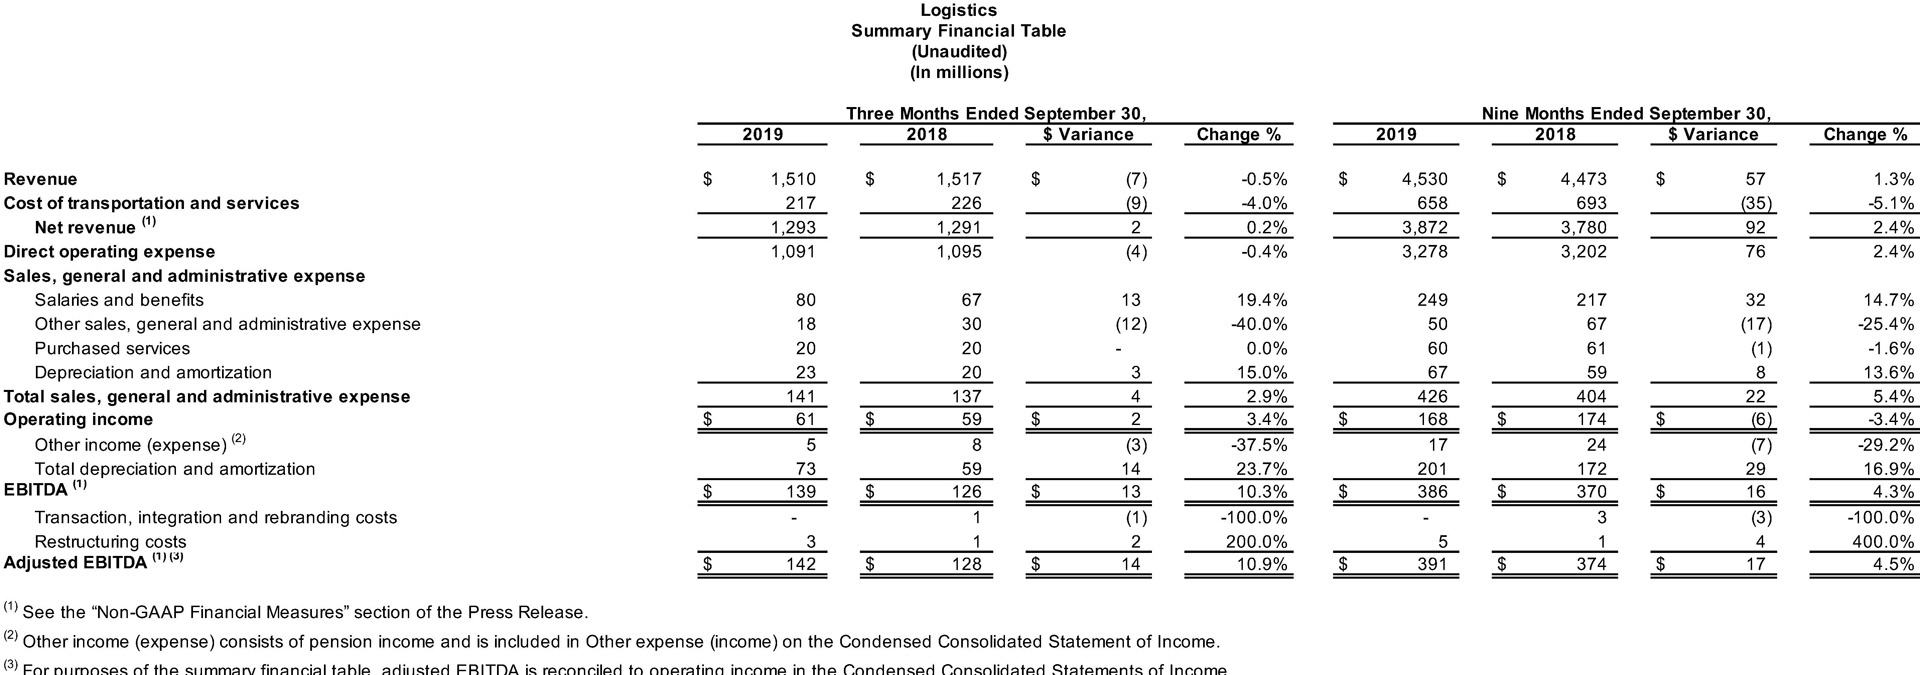 Logistics Summary Financial Table